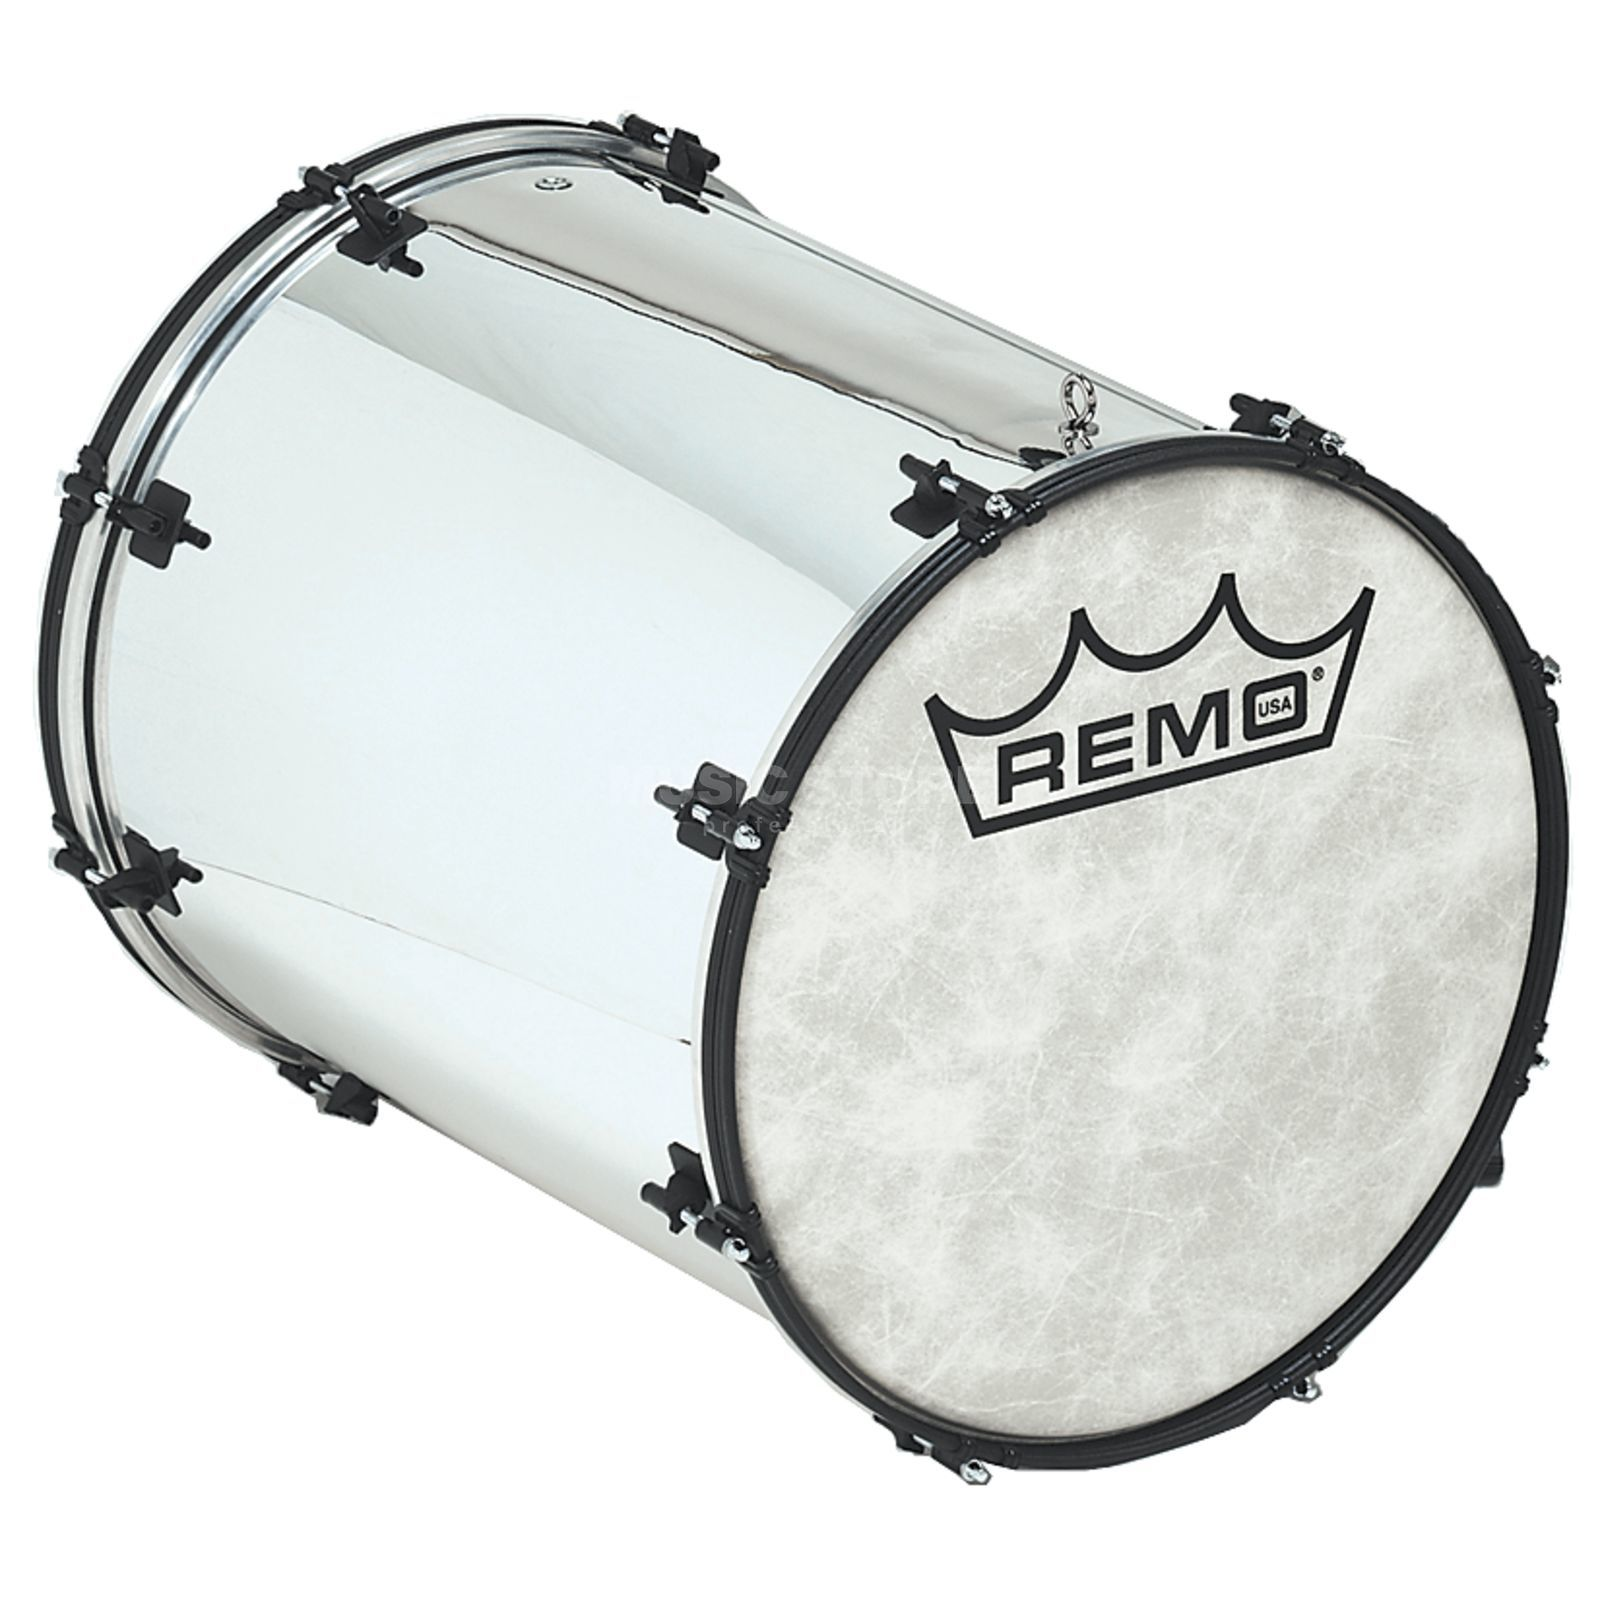 "Remo SU-3418-10 Surdo 18""x24"" Brasilian Collection Product Image"